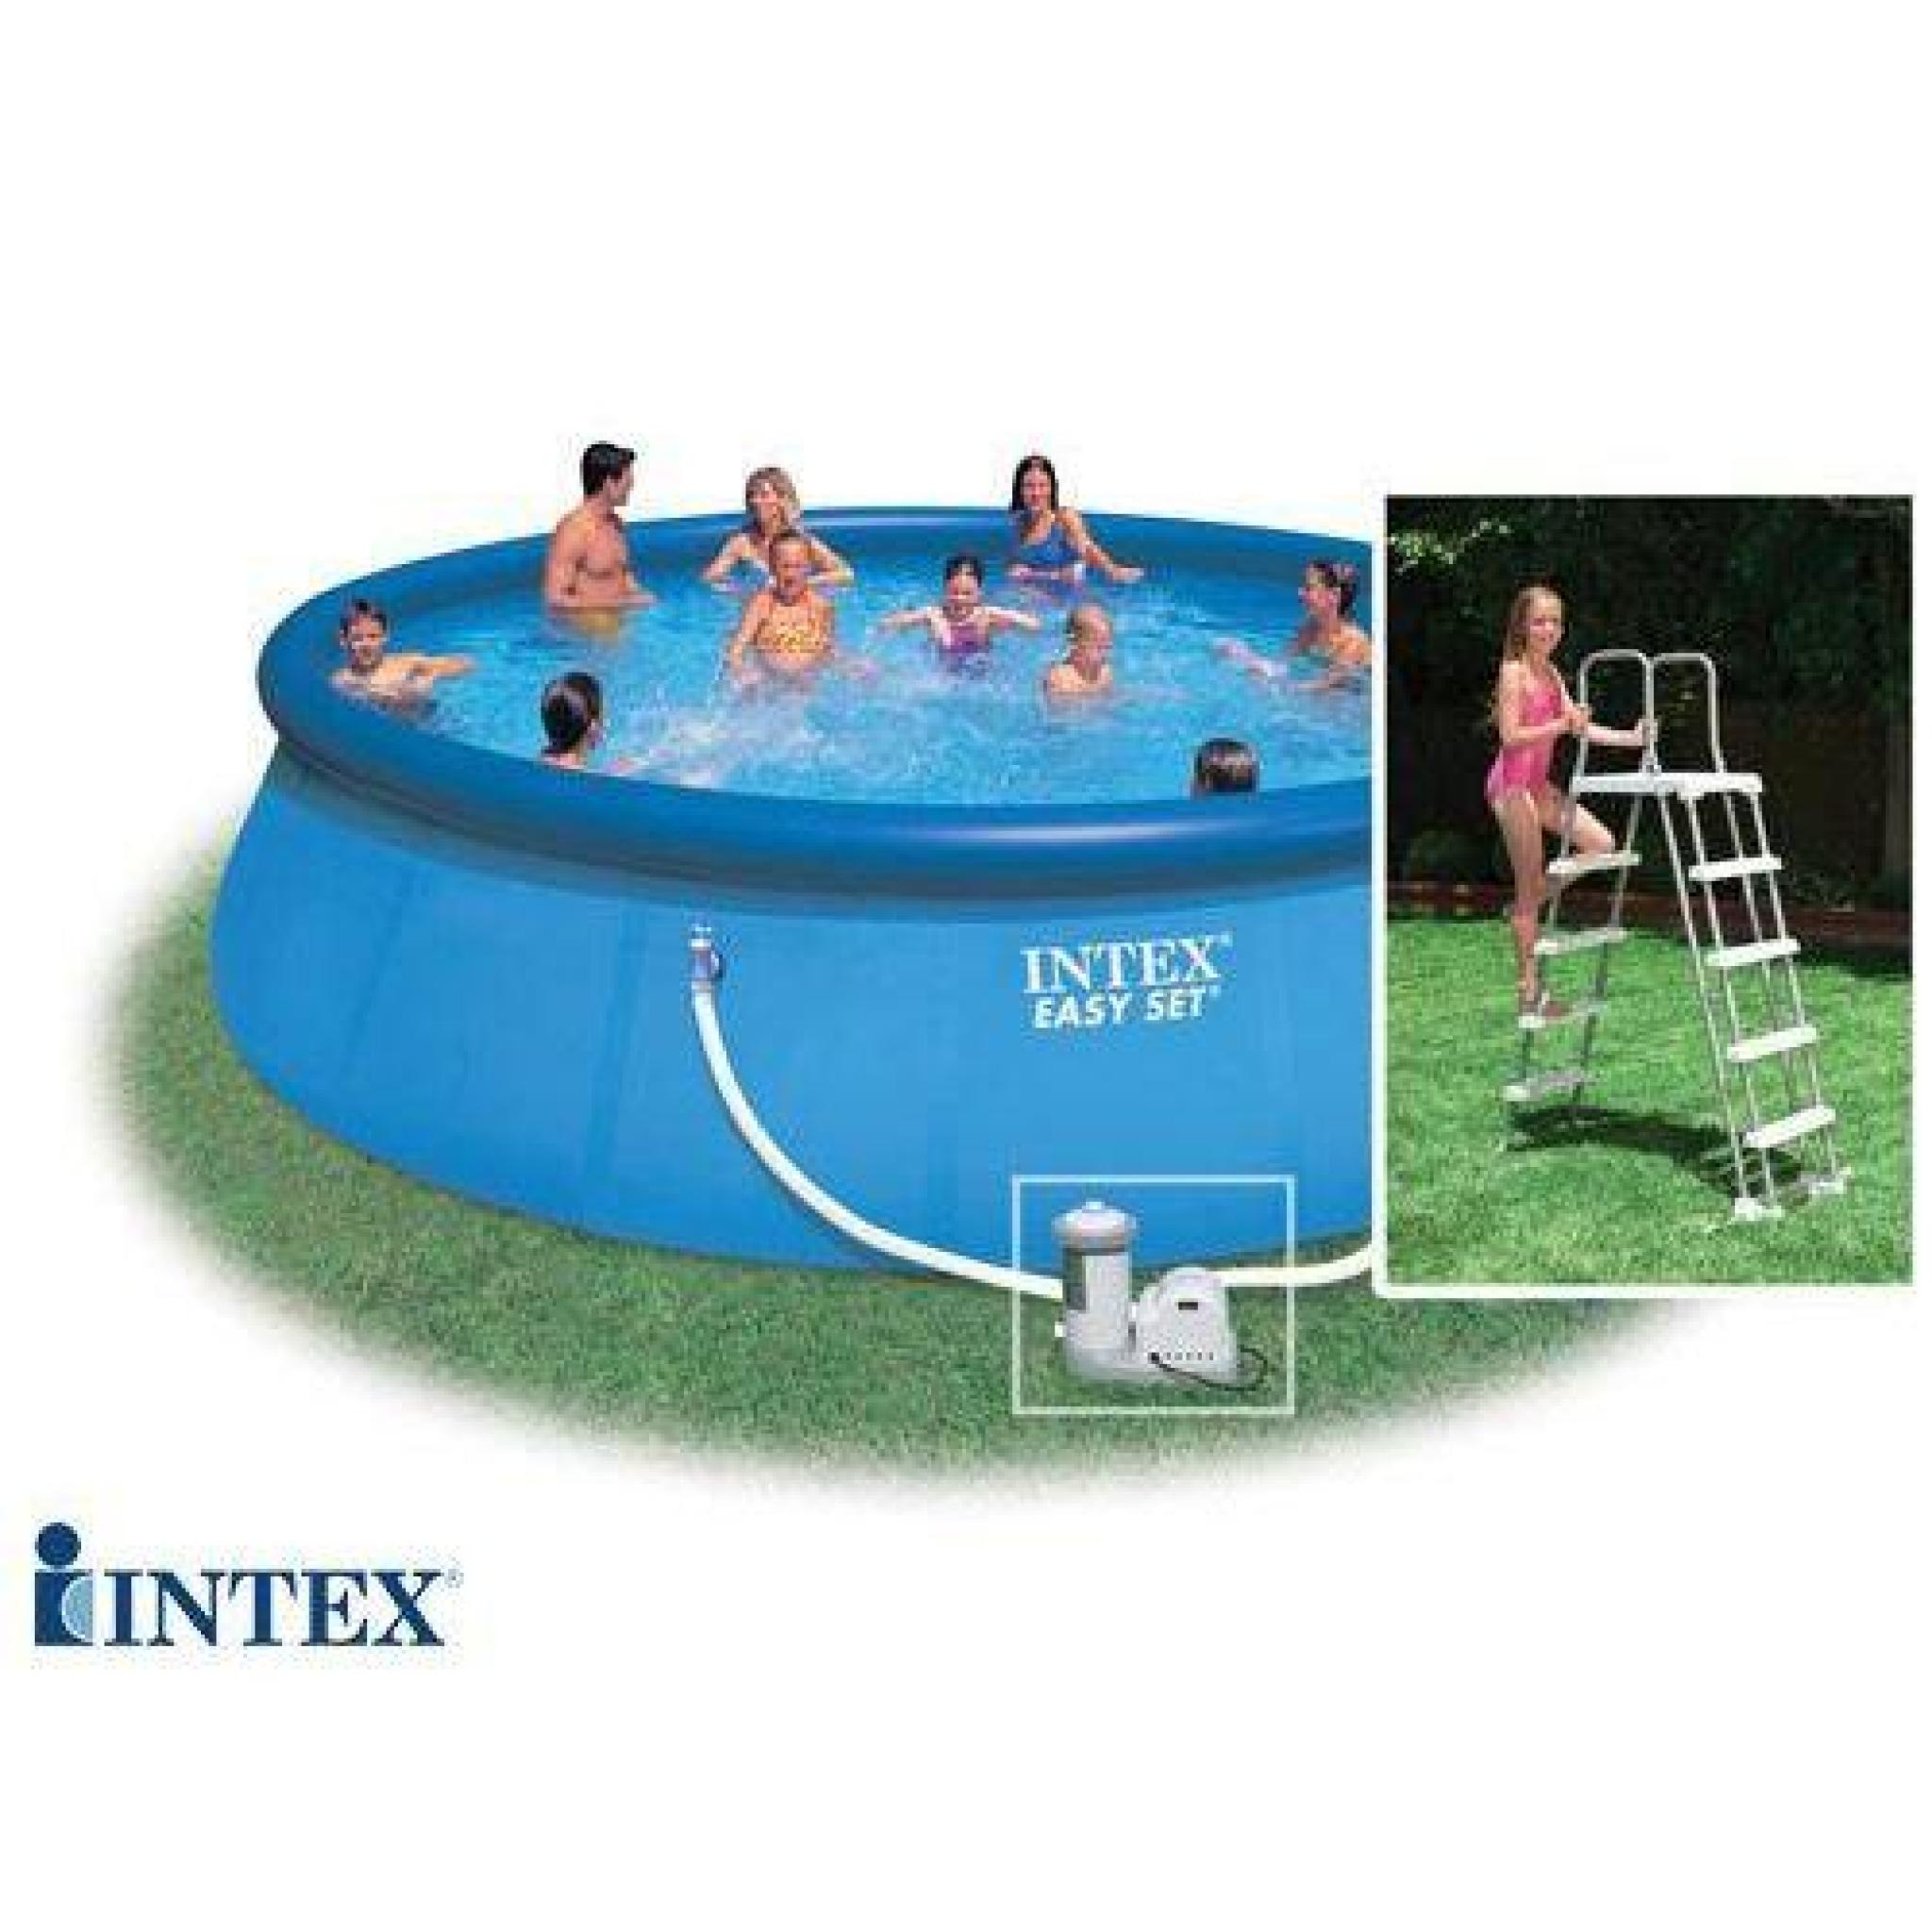 Piscine Autostable Intex 4,57 X 1,22 M encequiconcerne Piscine Autostable